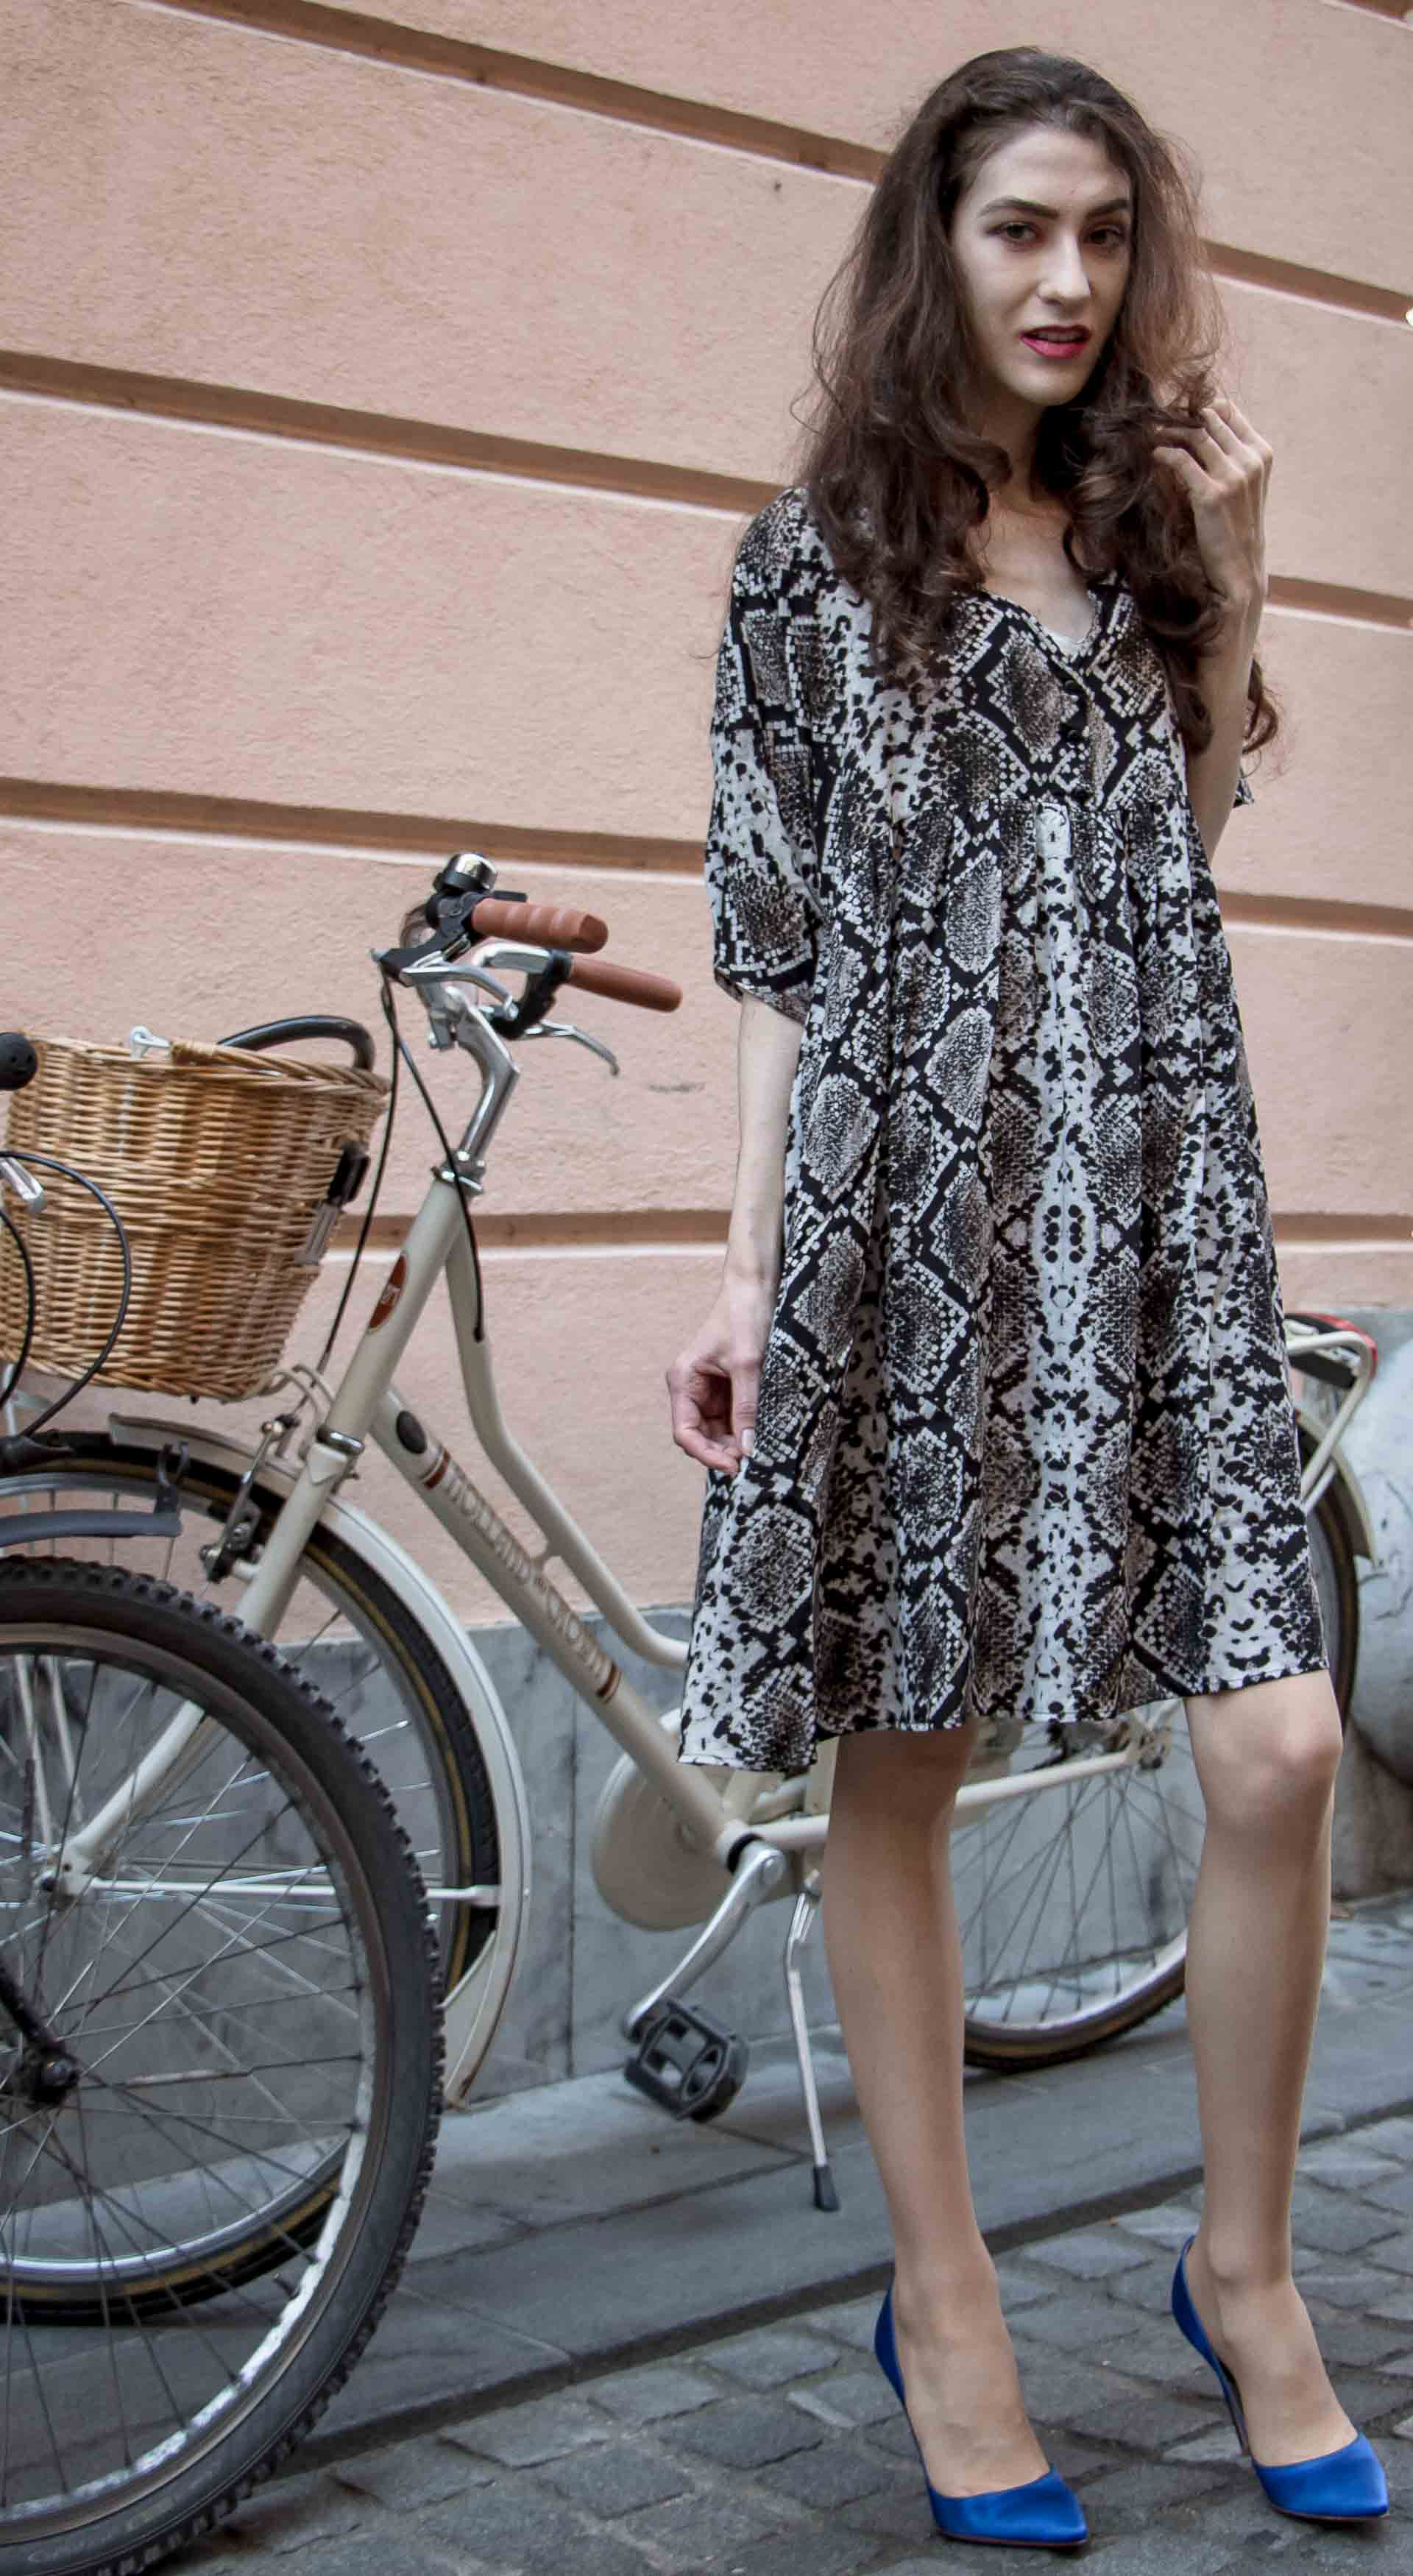 Beautiful Slovenian Fashion Blogger Veronika Lipar of Brunette from Wall dressed in flowing short snake print dress from Zara, blue Gianvito Rossi satin pumps, standing by the bicycle on the street in Ljubljana